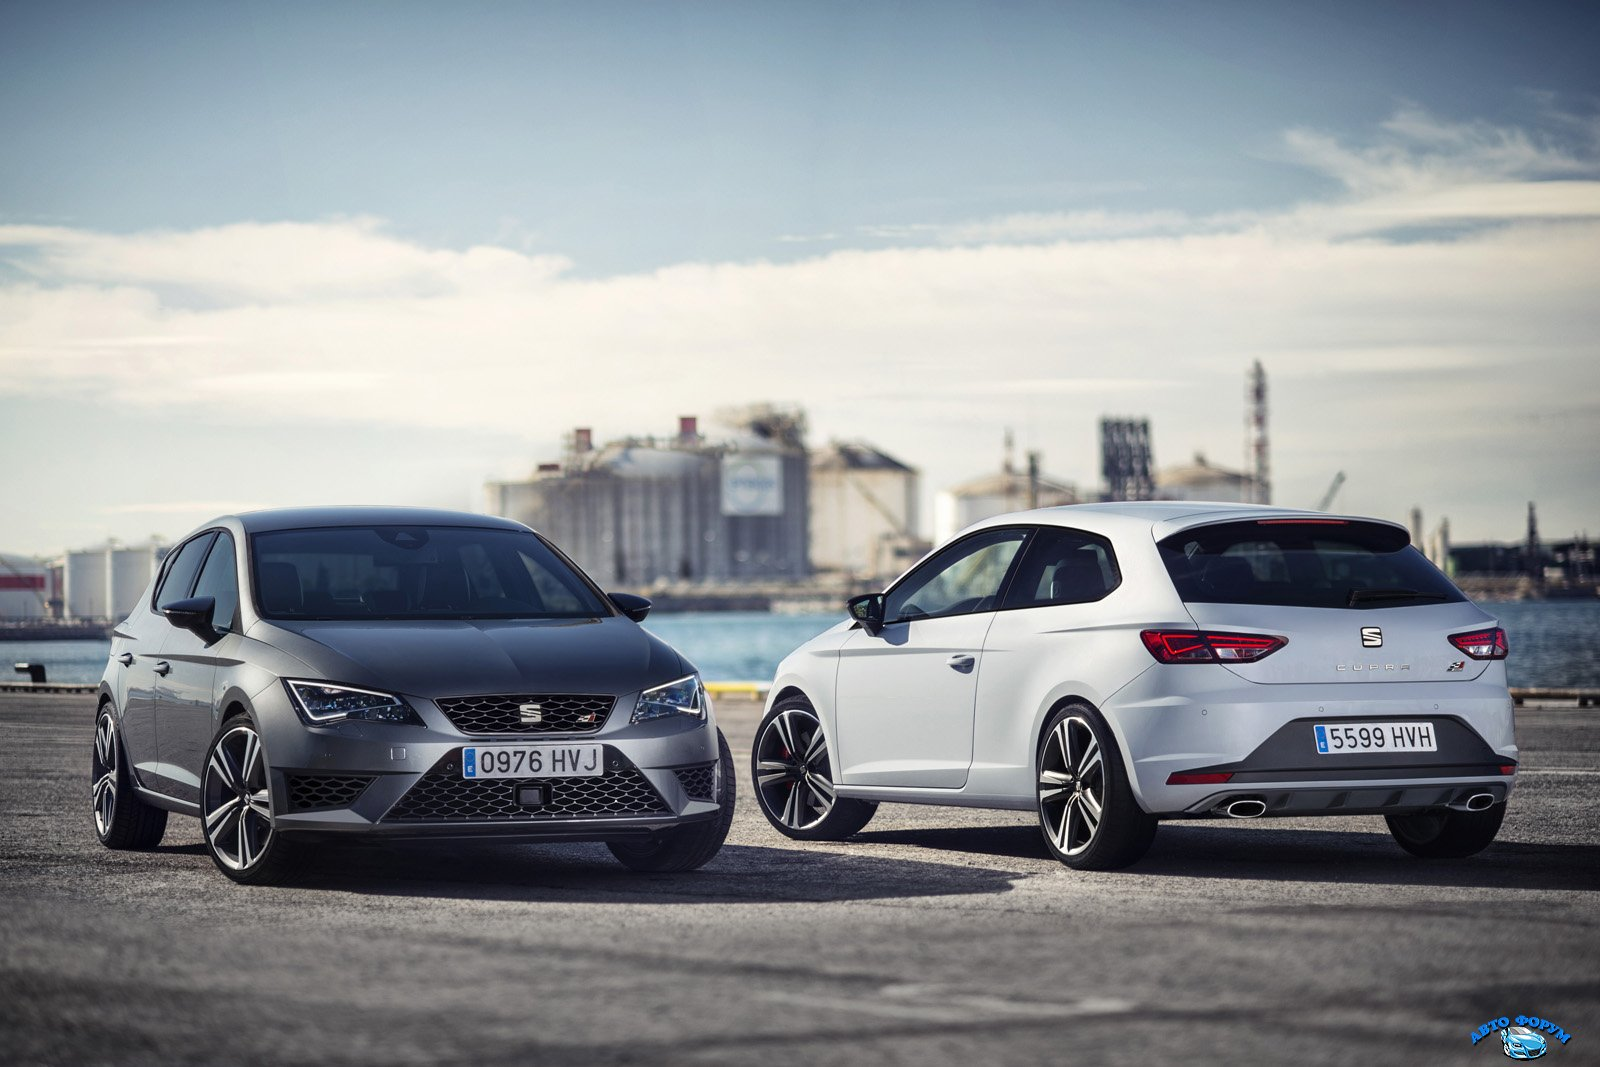 new-photos-and-videos-show-280-hp-seat-leon-cupra-in-detail_2.jpg